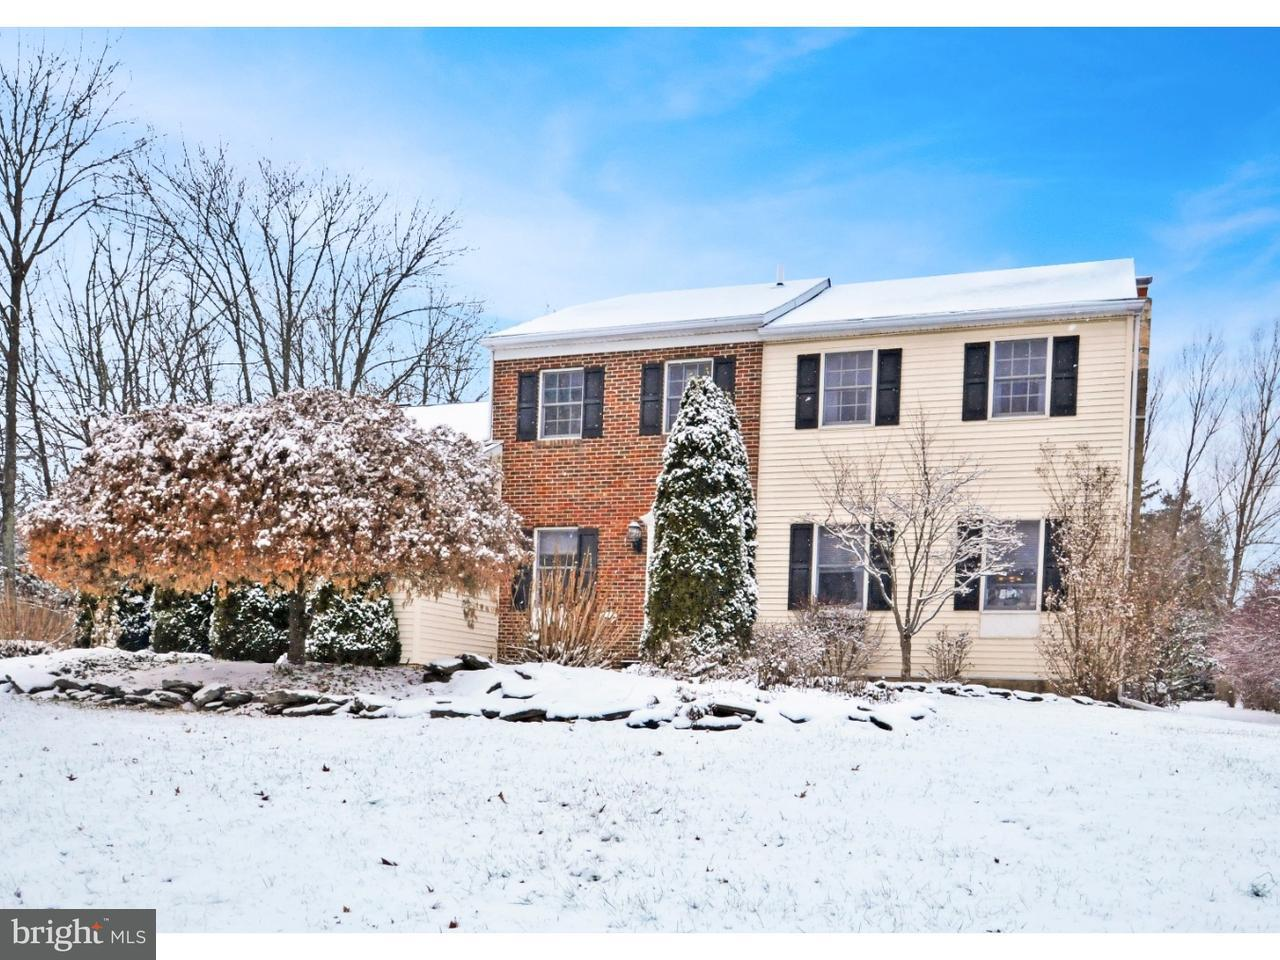 Single Family Home for Sale at 3119 EISENHOWER Drive East Norriton, Pennsylvania 19403 United States